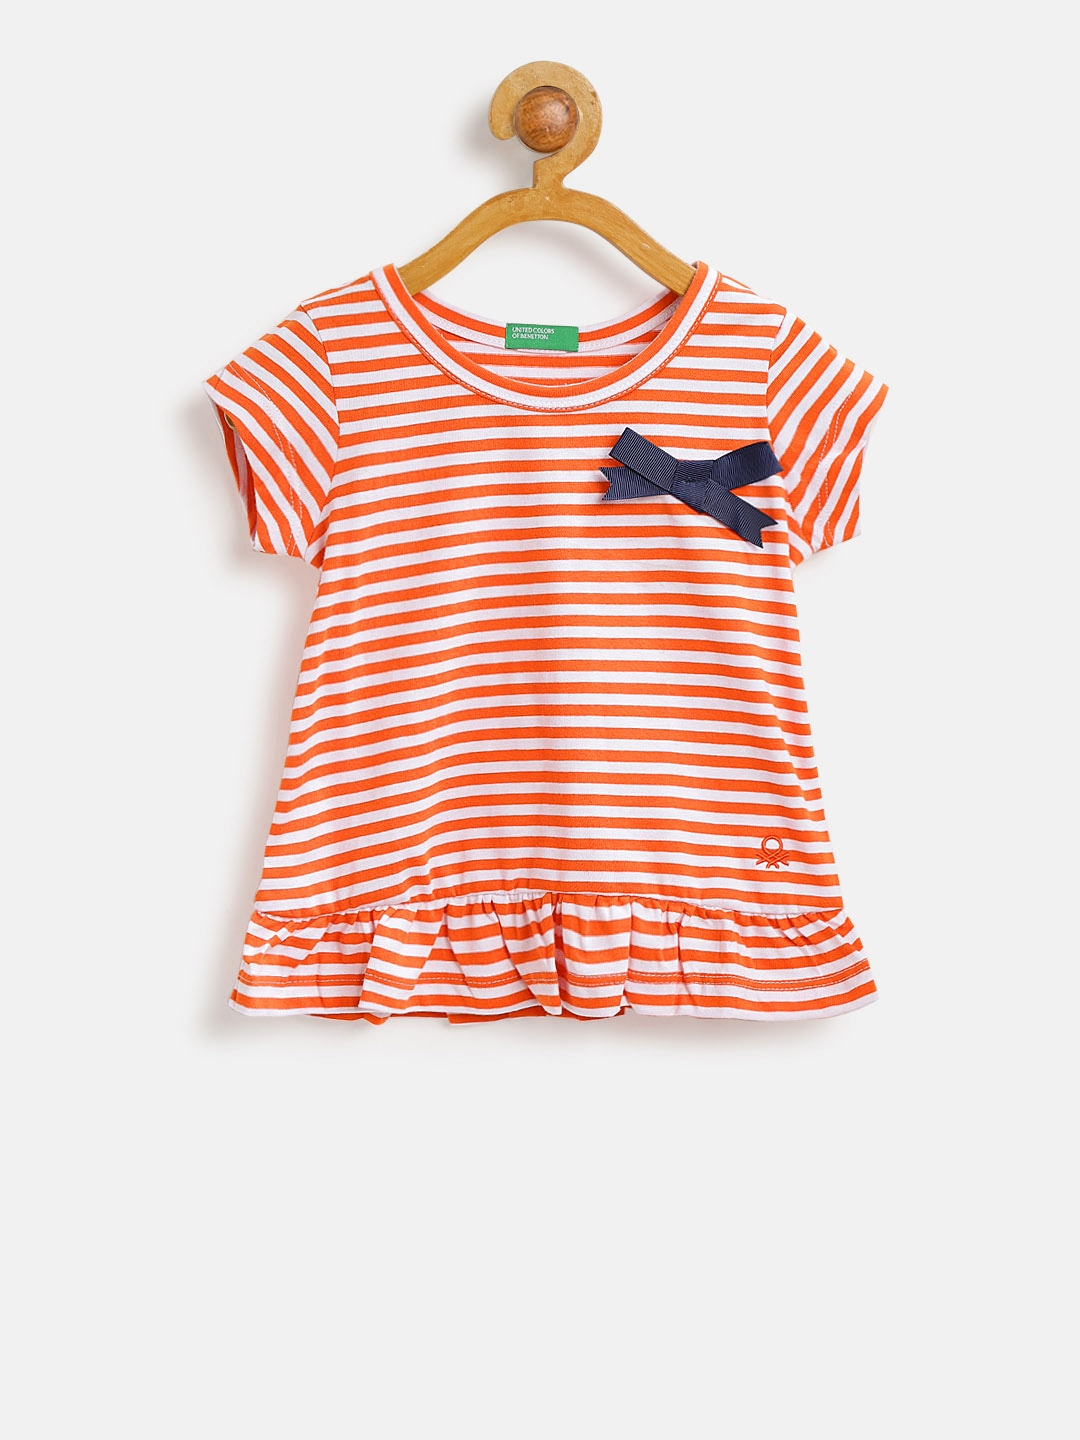 9217227cd1 Girls Tops - Buy Stylish Top for Girls Online in India